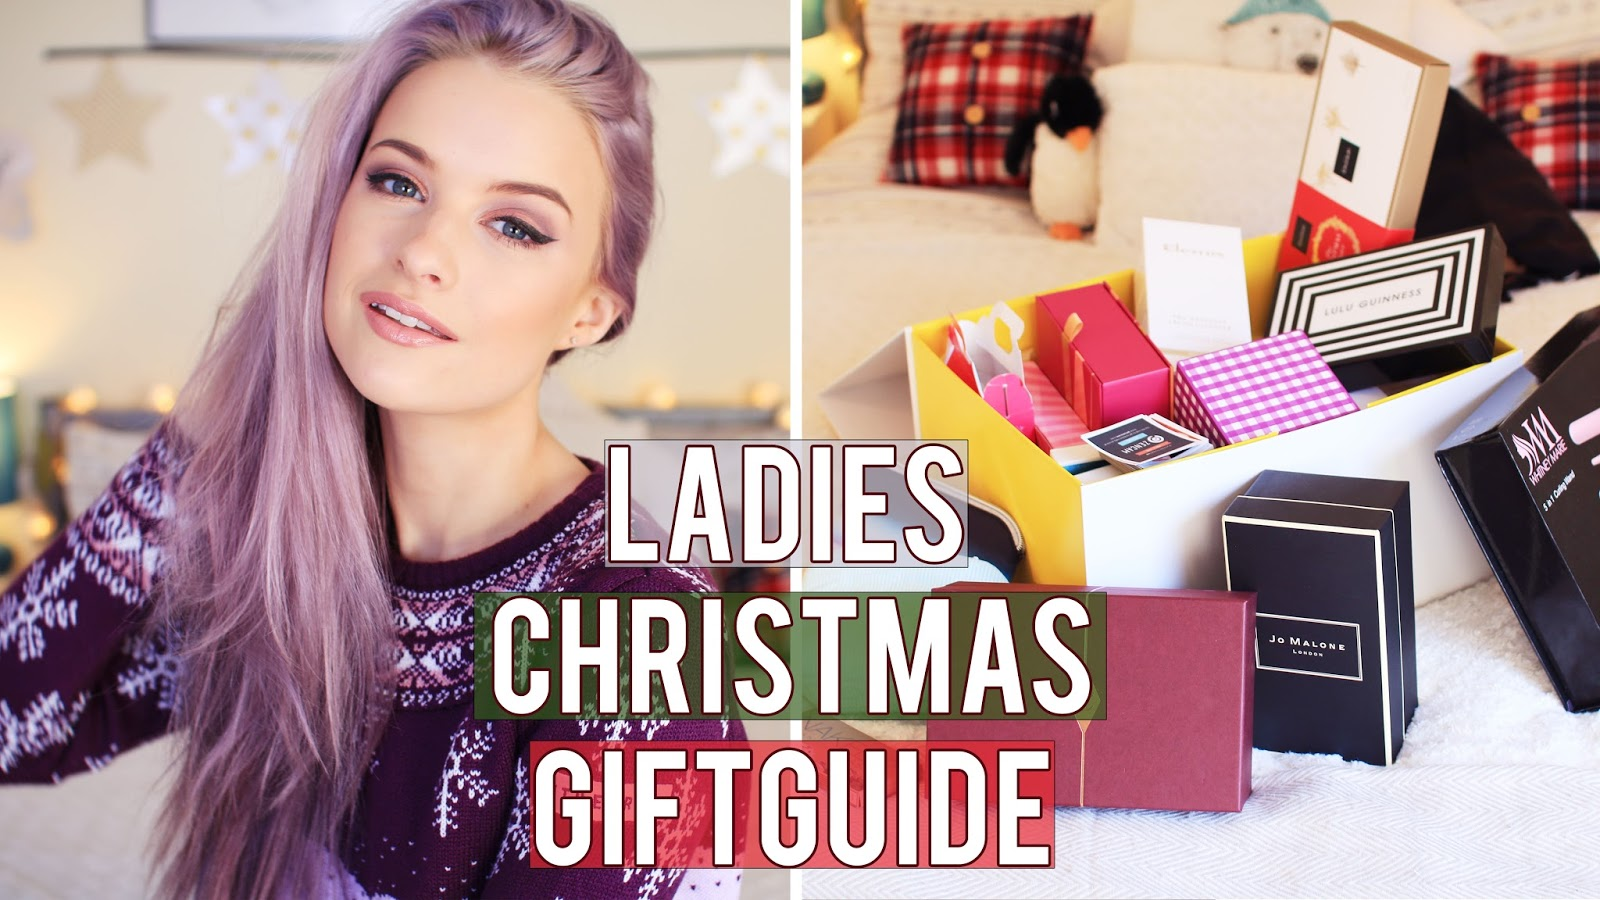 The Ladies Christmas Gift Guide